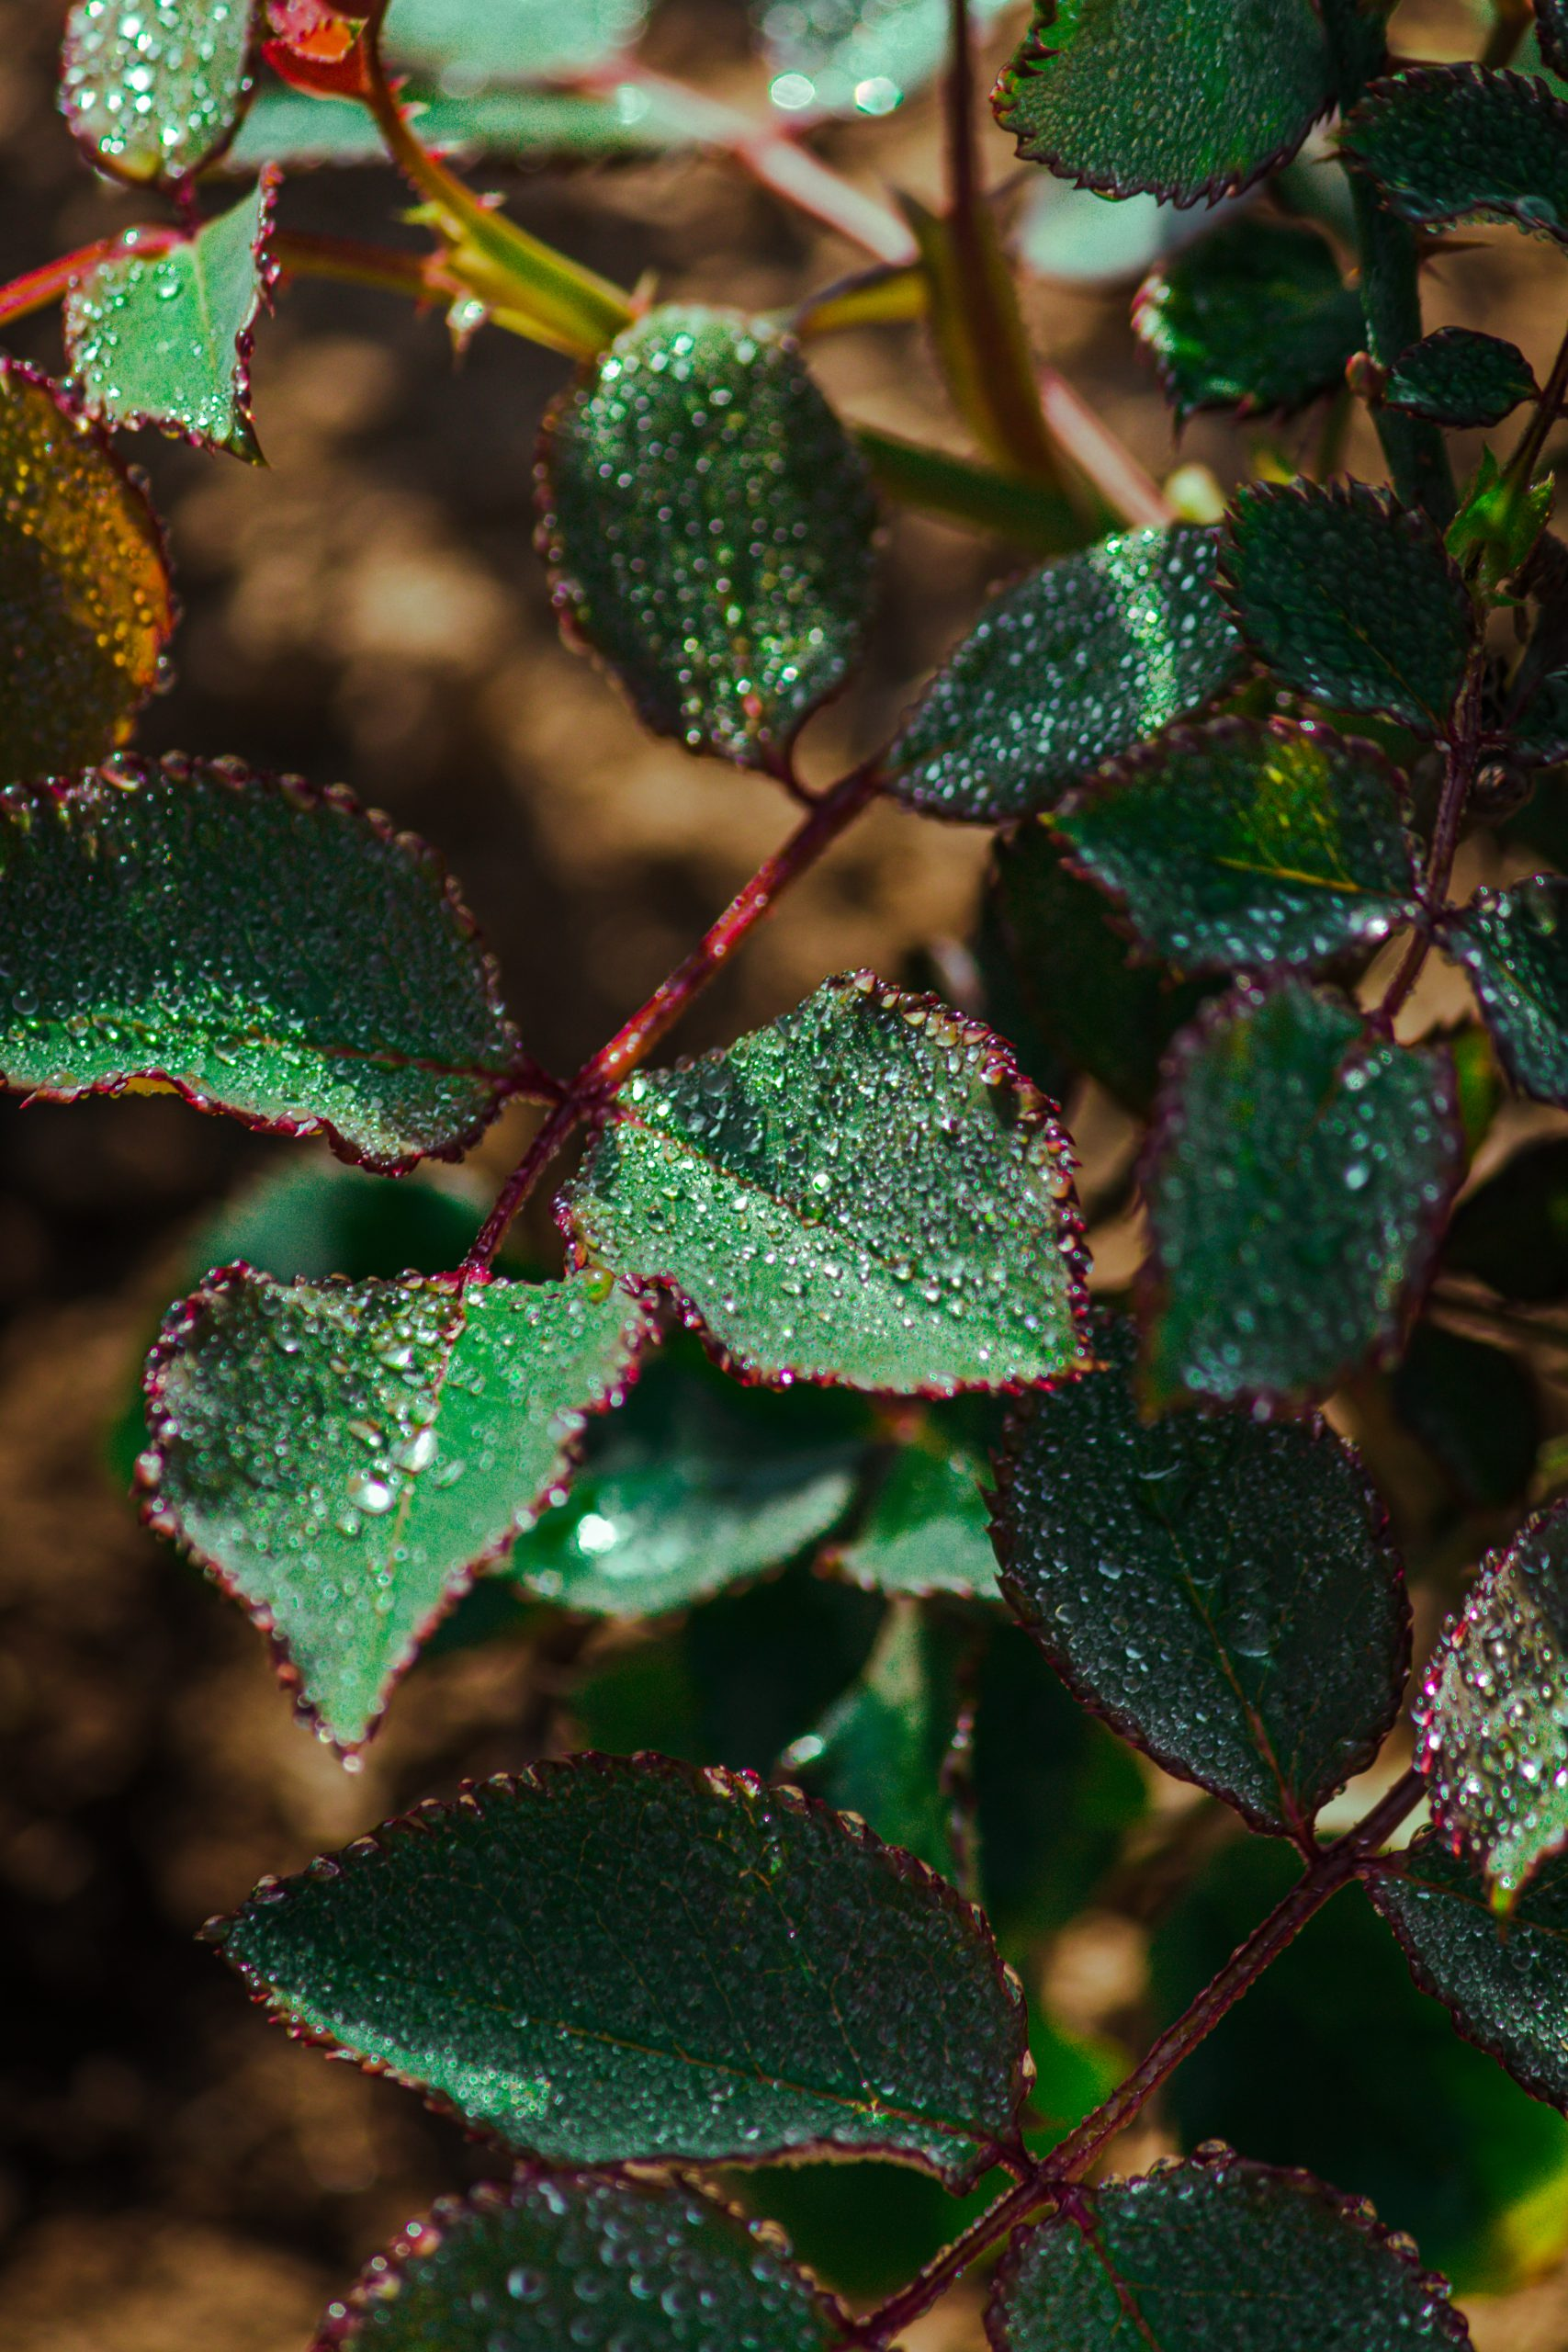 Dew drops on a plant leaves